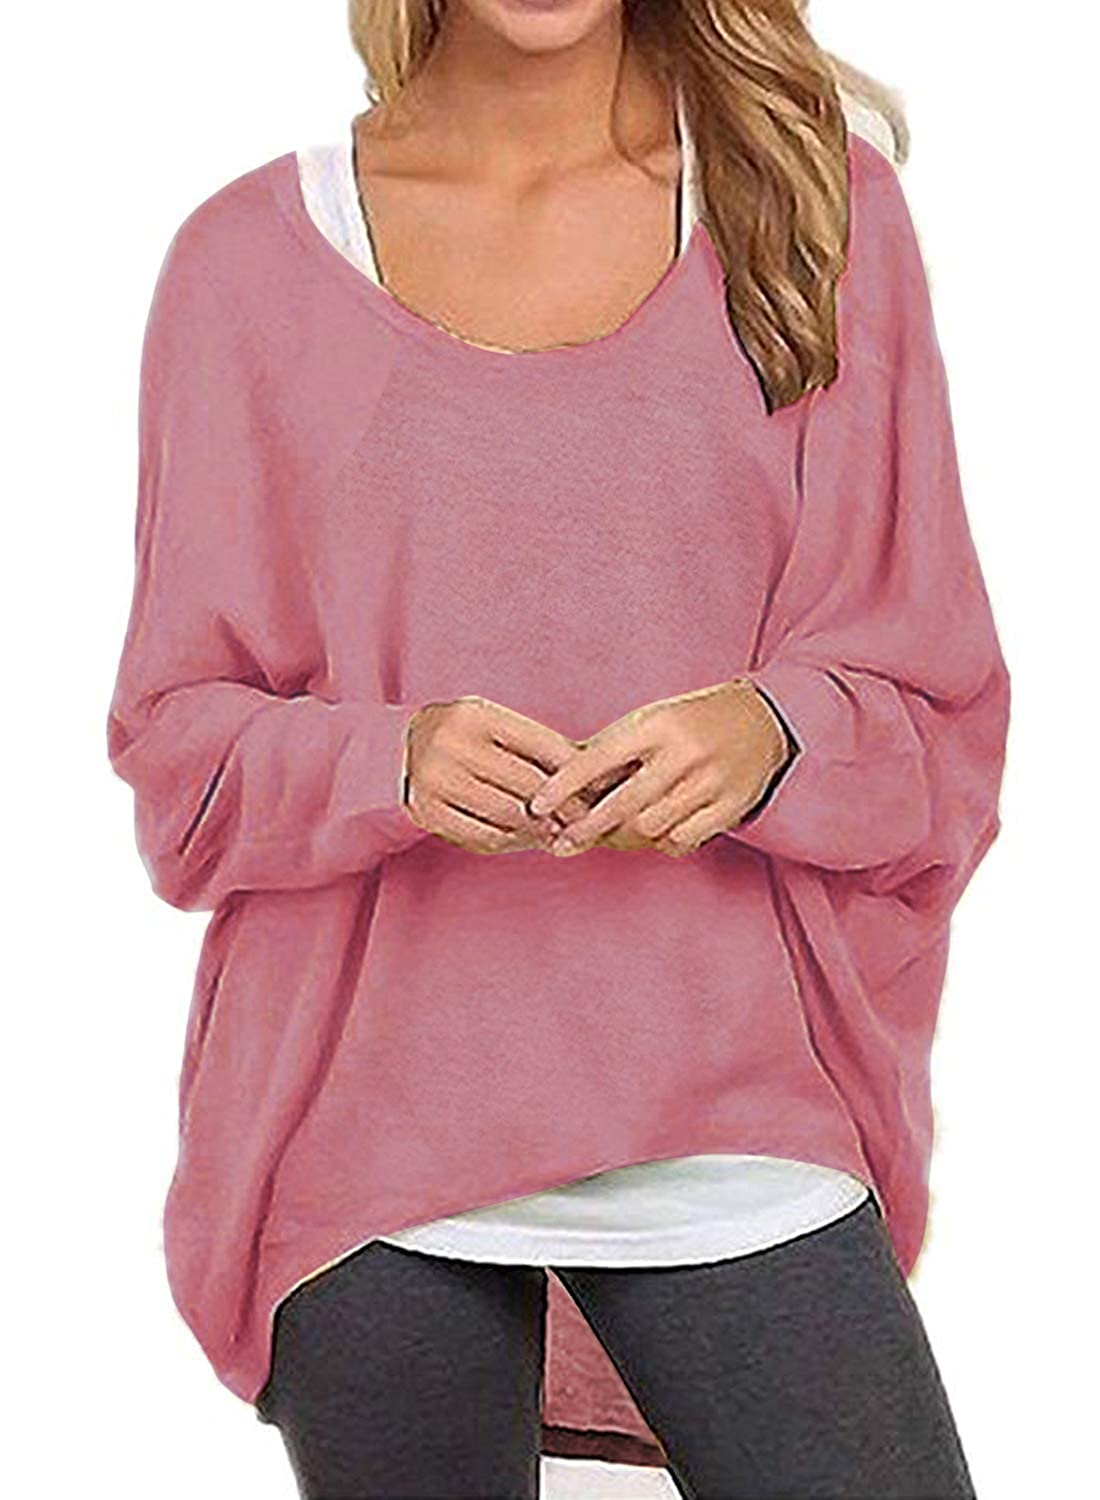 38cf7a54250 I2CRAZY Women s Casual Tunic Tops Oversized Long Batwing Sleeve Off-Shoulder  Pullover Shirts Tops at Amazon Women s Clothing store